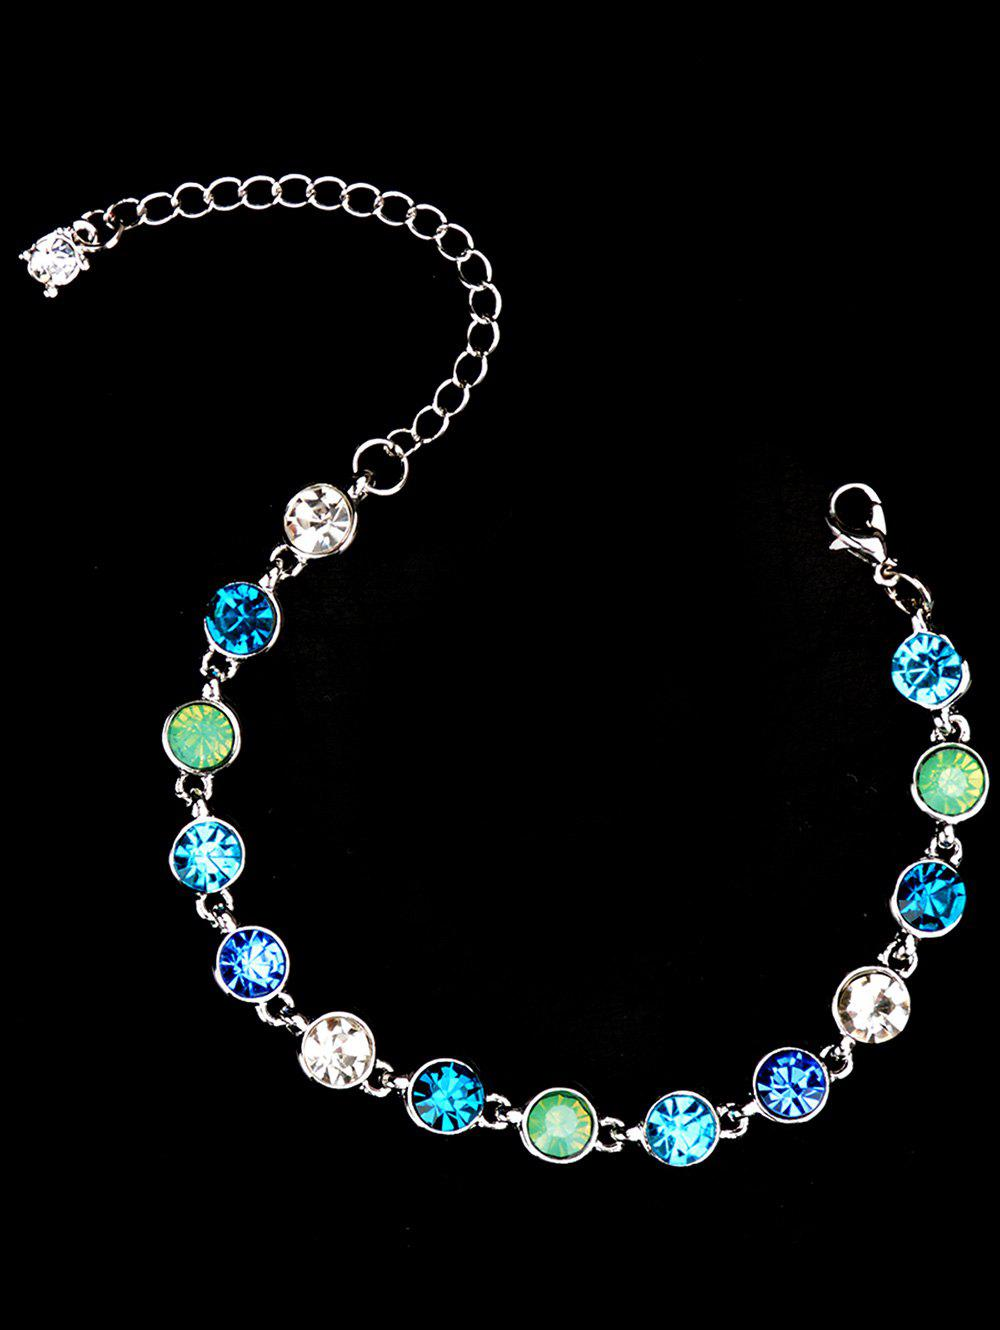 Rhinestoned Sparkly Chain BraceletJEWELRY<br><br>Color: SILVER; Item Type: Chain &amp; Link Bracelet; Gender: For Women; Chain Type: Link Chain; Material: Rhinestone; Style: Trendy; Shape/Pattern: Round; Length: 23CM; Weight: 0.0300kg; Package Contents: 1 x Bracelet;